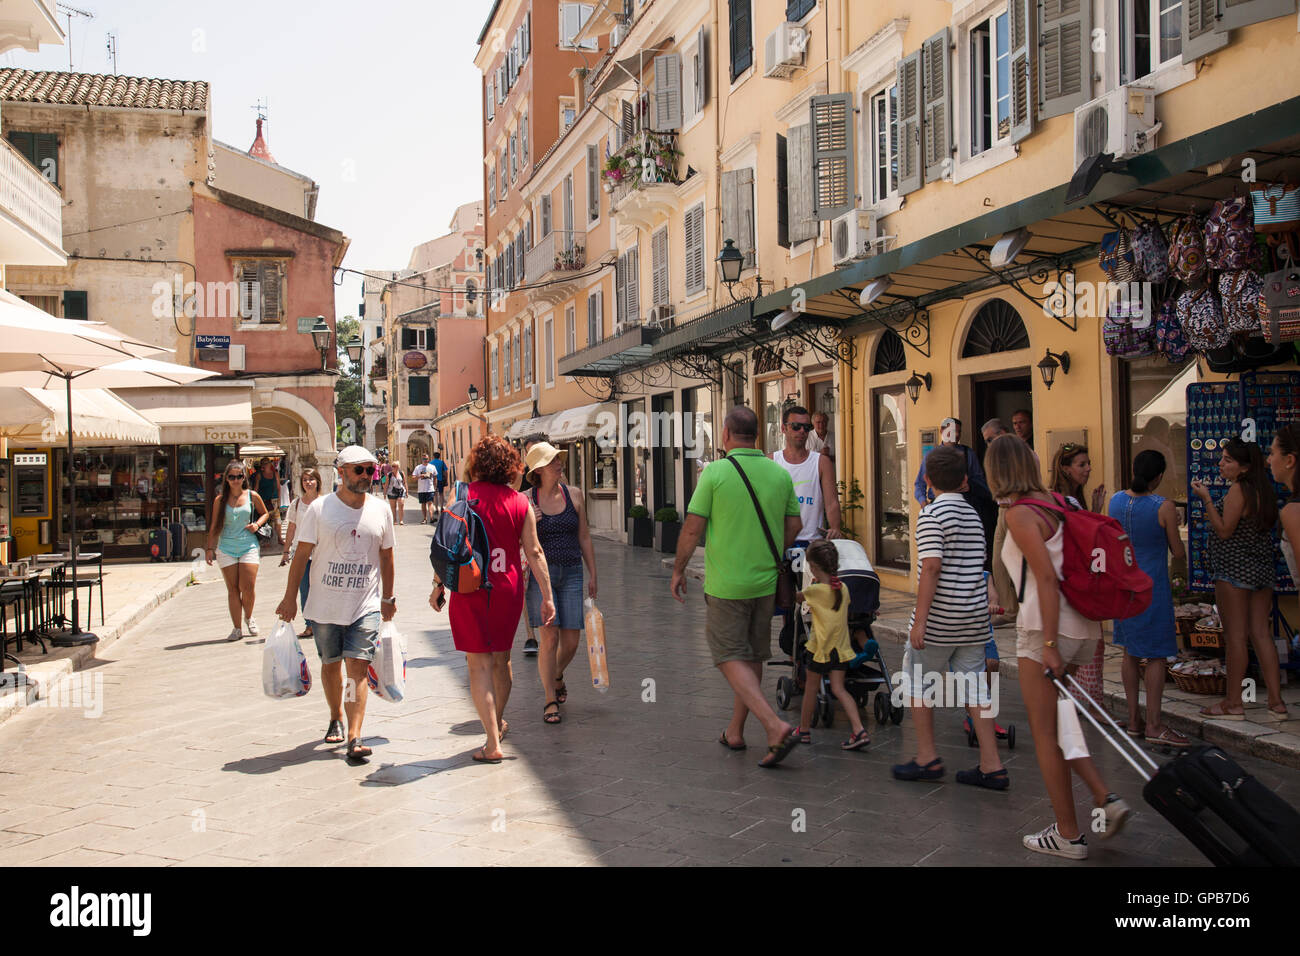 Holidaymakers sightseeing and shopping in Corfu town, Corfu, Greece - Stock Image